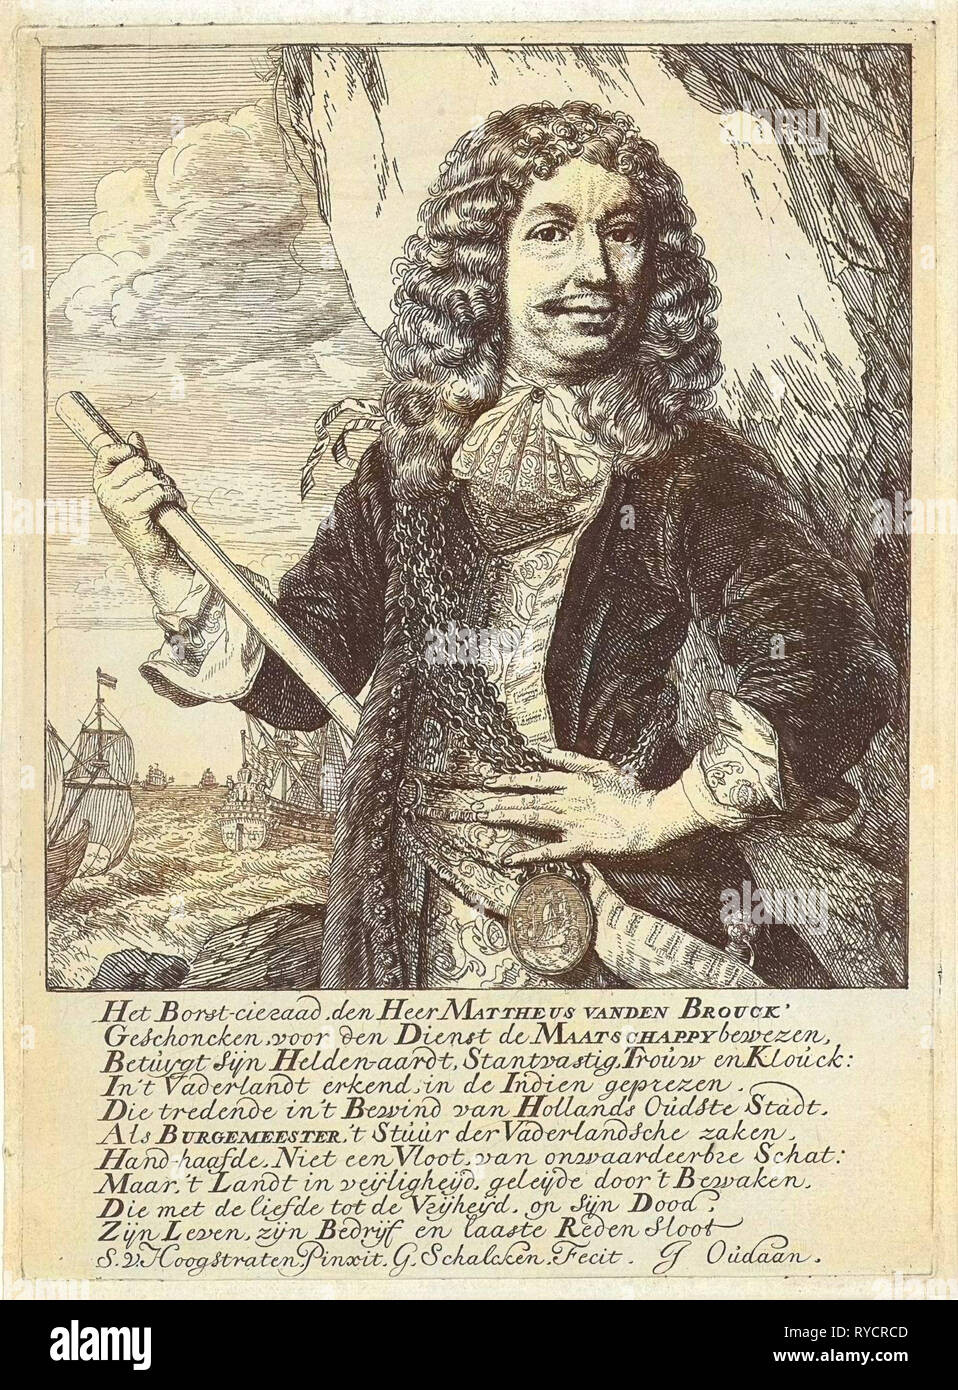 Portrait of the Dordrecht mayor and Admiral Mattheus van den Broucke chest with a jewel and a baton, behind him, a rock wall and a choppy sea with a fleet, print maker: Godfried Schalcken (mentioned on object), Dating 1660 - 1680 - Stock Image